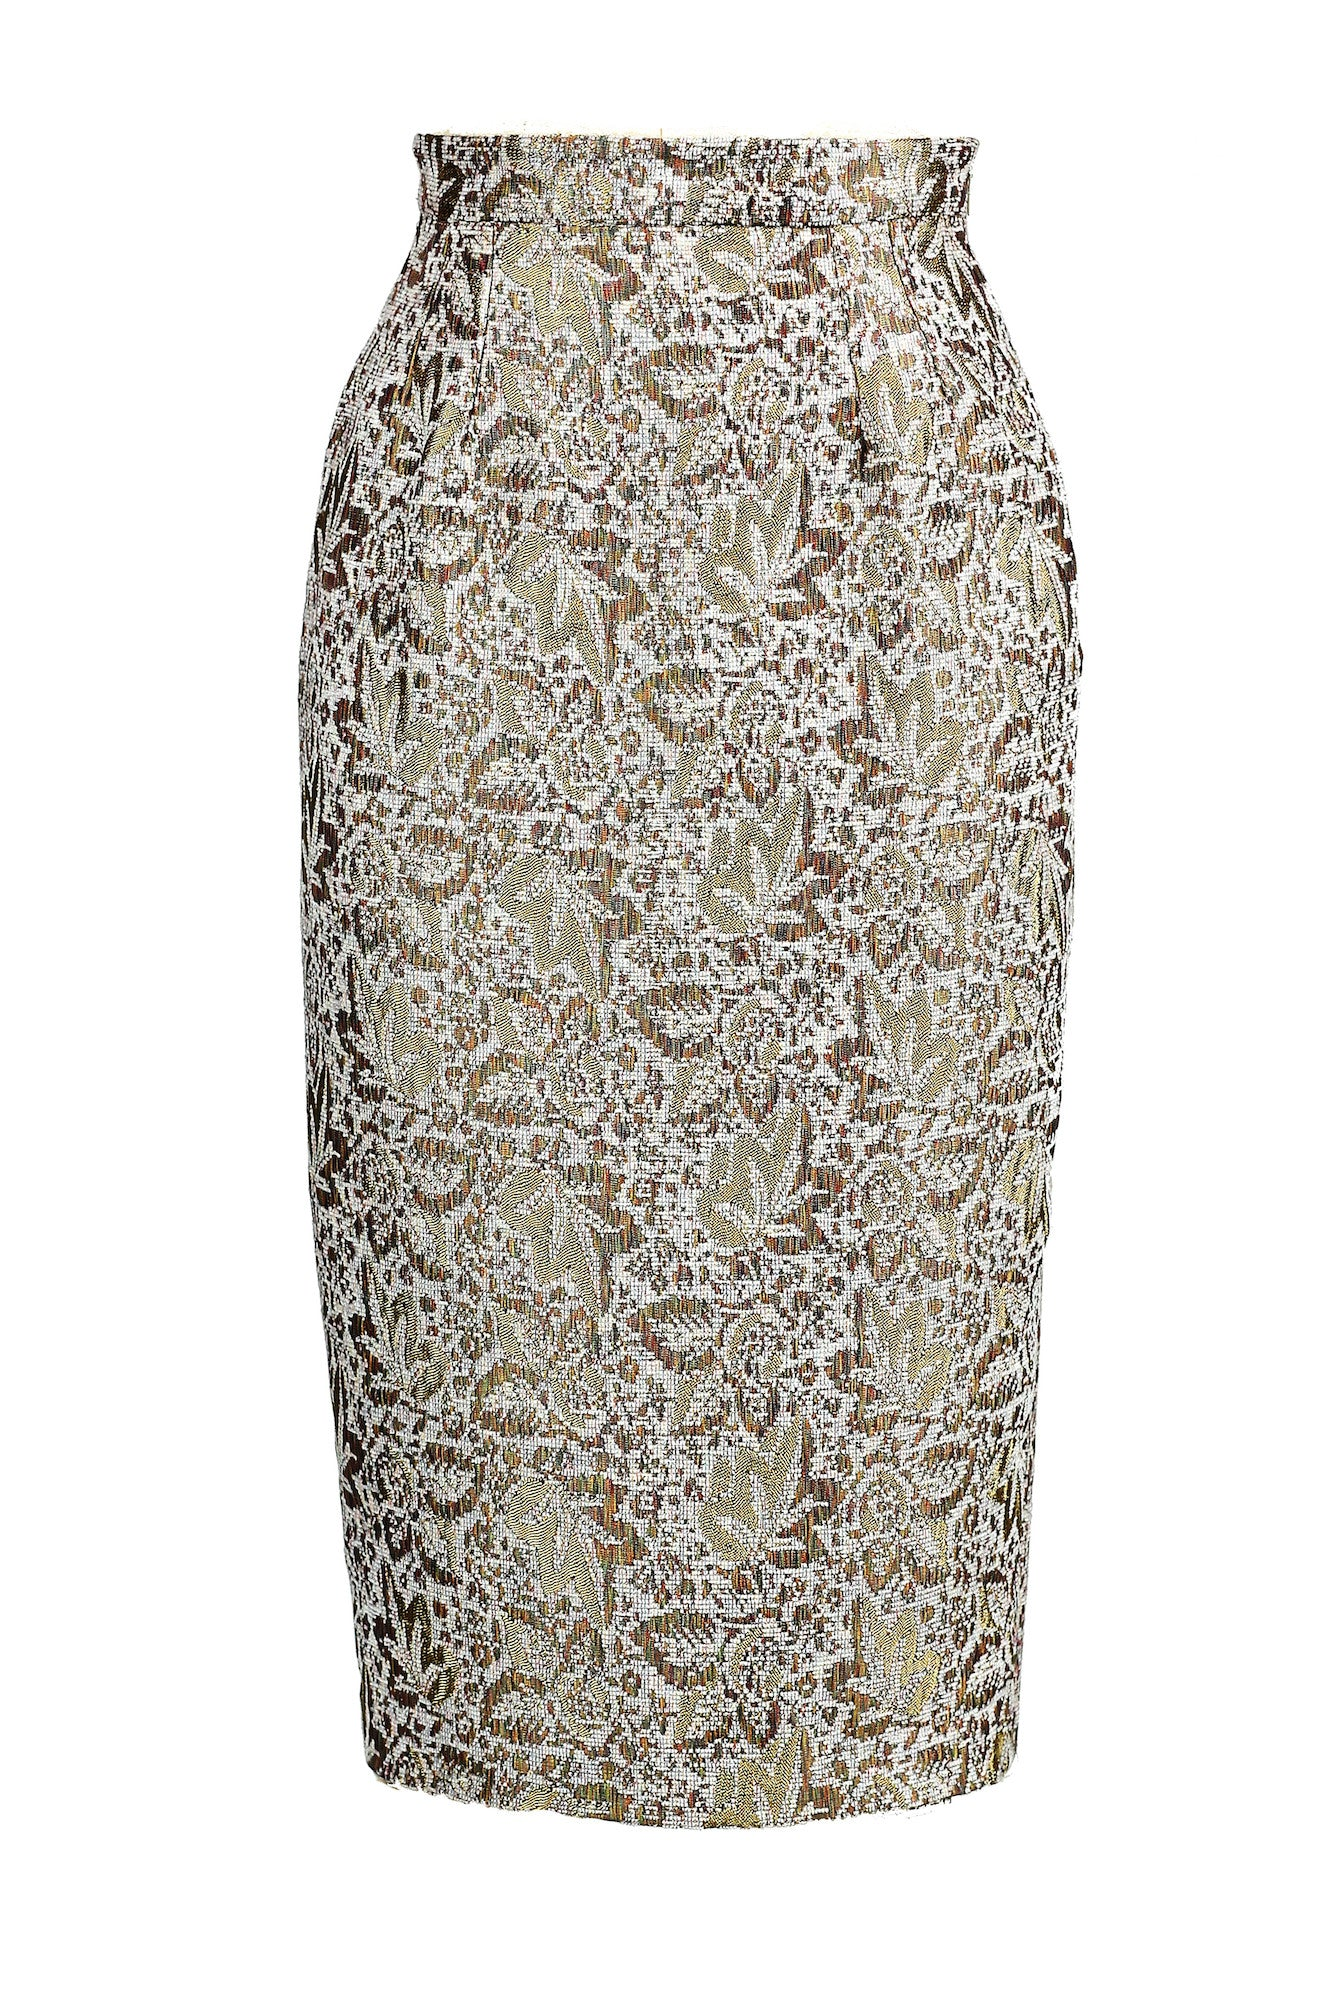 Textured High-waisted Pencil Skirt for All Seasons - Steve Guthrie - 3